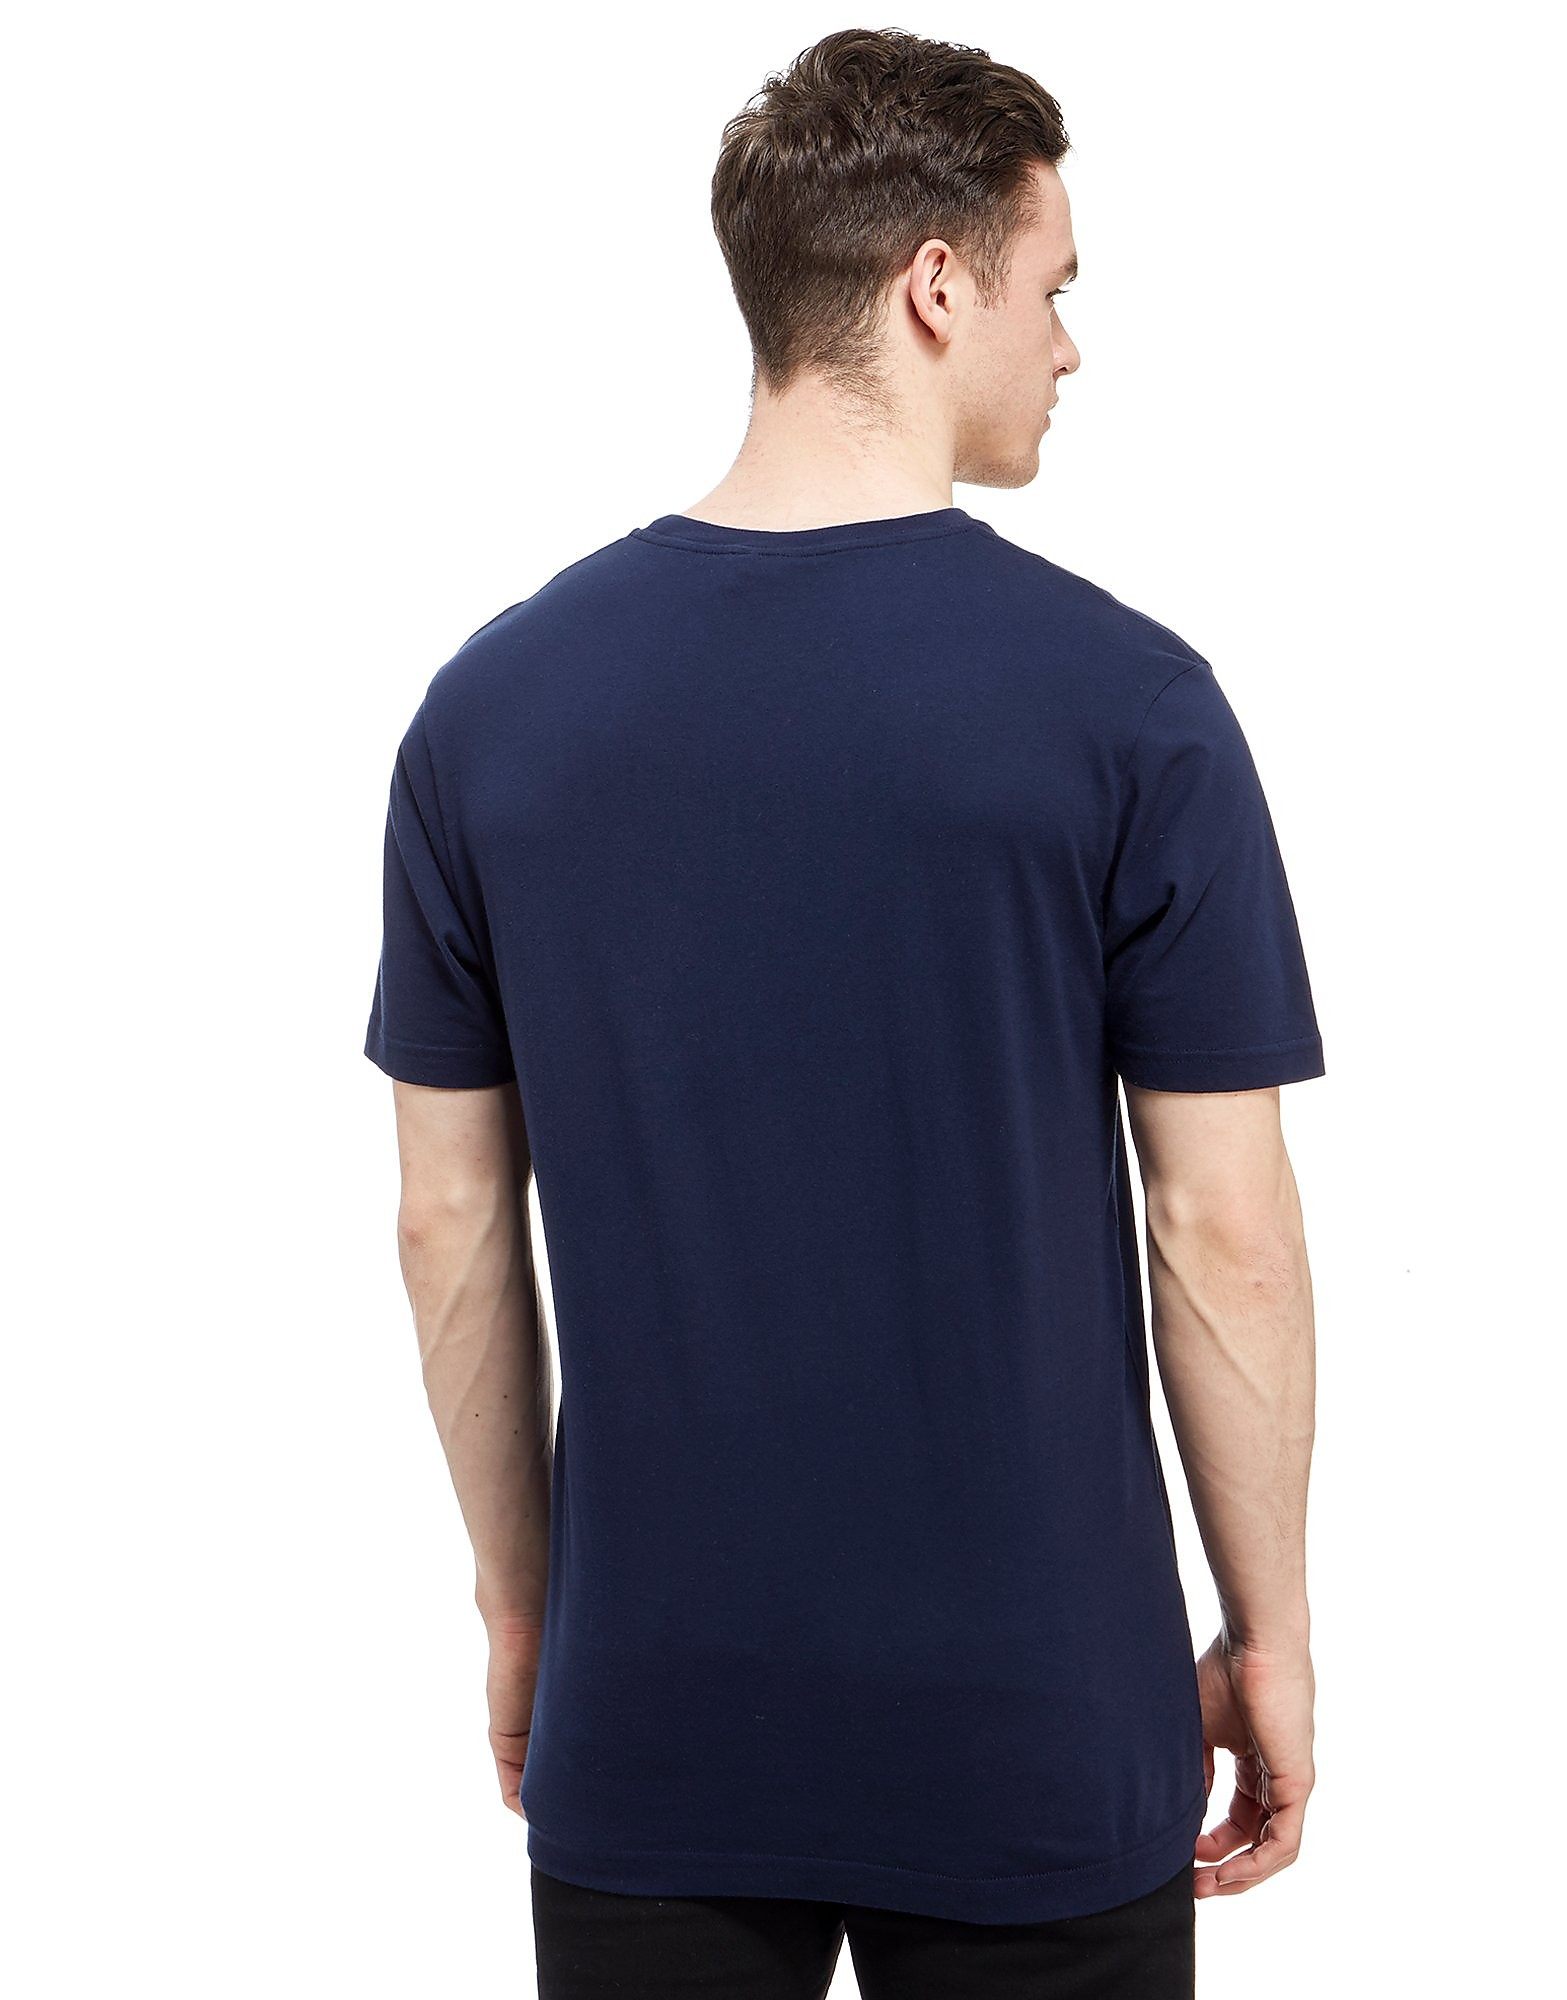 Franklin & Marshall Large Logo T-Shirt